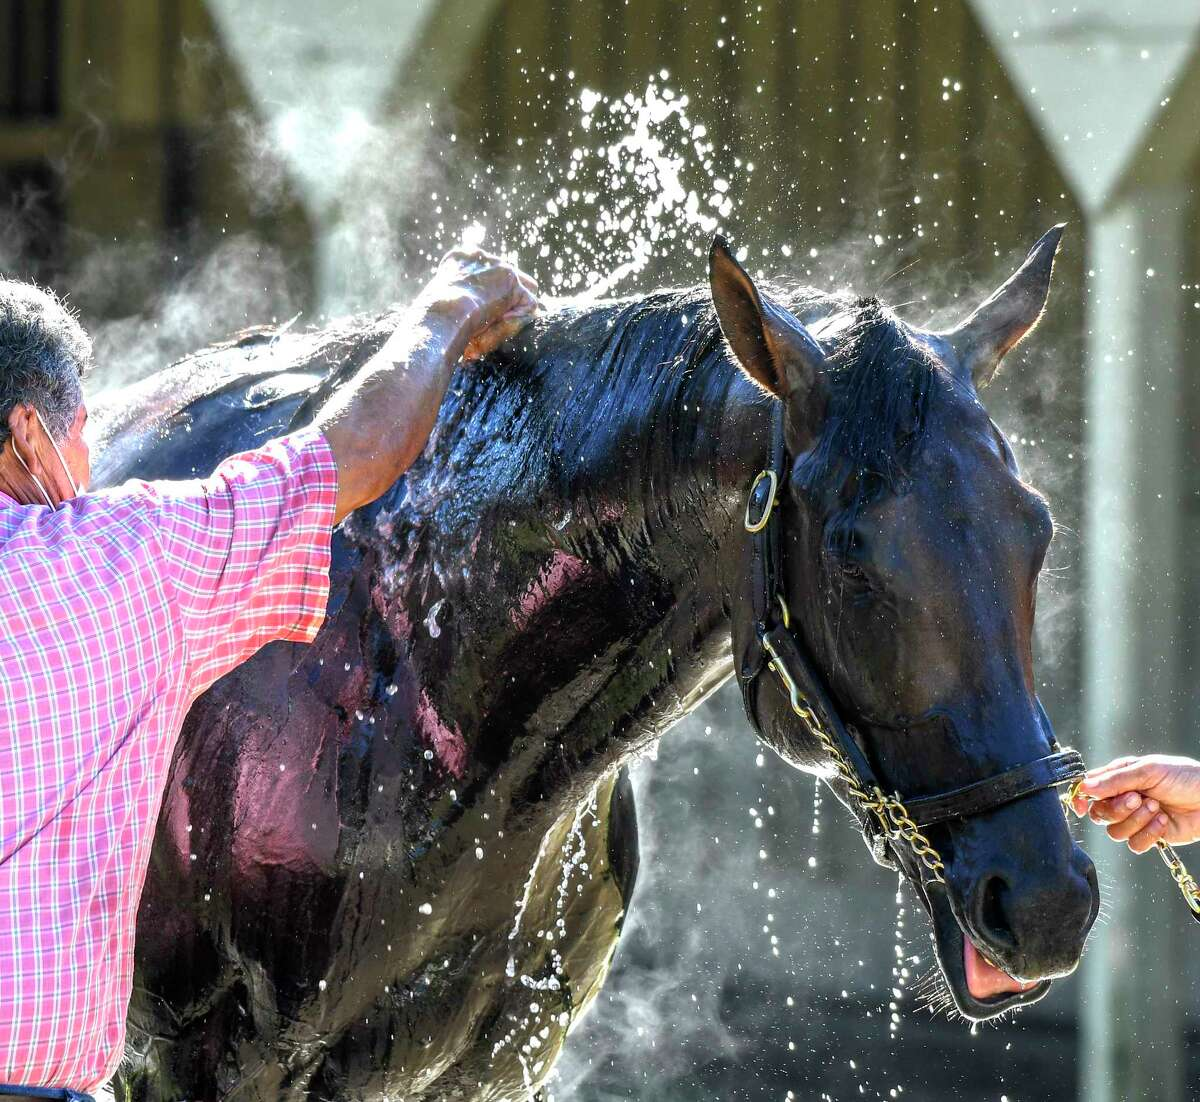 Caracaro, second to Tiz the Law in the Travers Stakes gets a bath this morning after his morning exercise Thursday Aug.20, 2020 at the Oklahoma Training Center in Saratoga Springs, N.Y. Caracaro was going to make his next start in the Sept. 5 Kentucky Derby, but is out with an injury. Photo by Skip Dickstein/Special to the Times Union